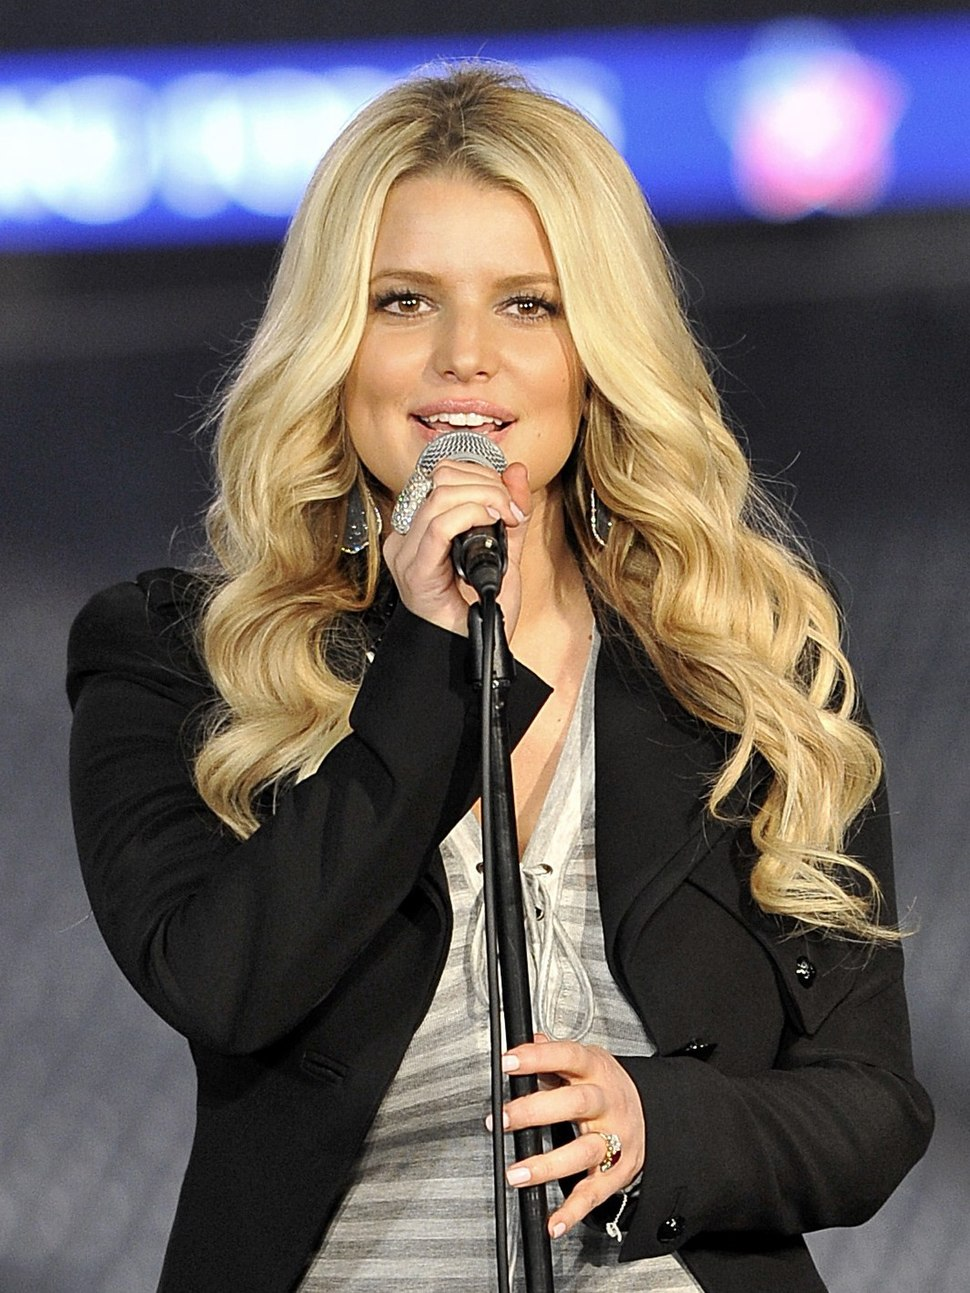 Jessica Simpson Joining Forces with the Rockies April 2011 (cropped)